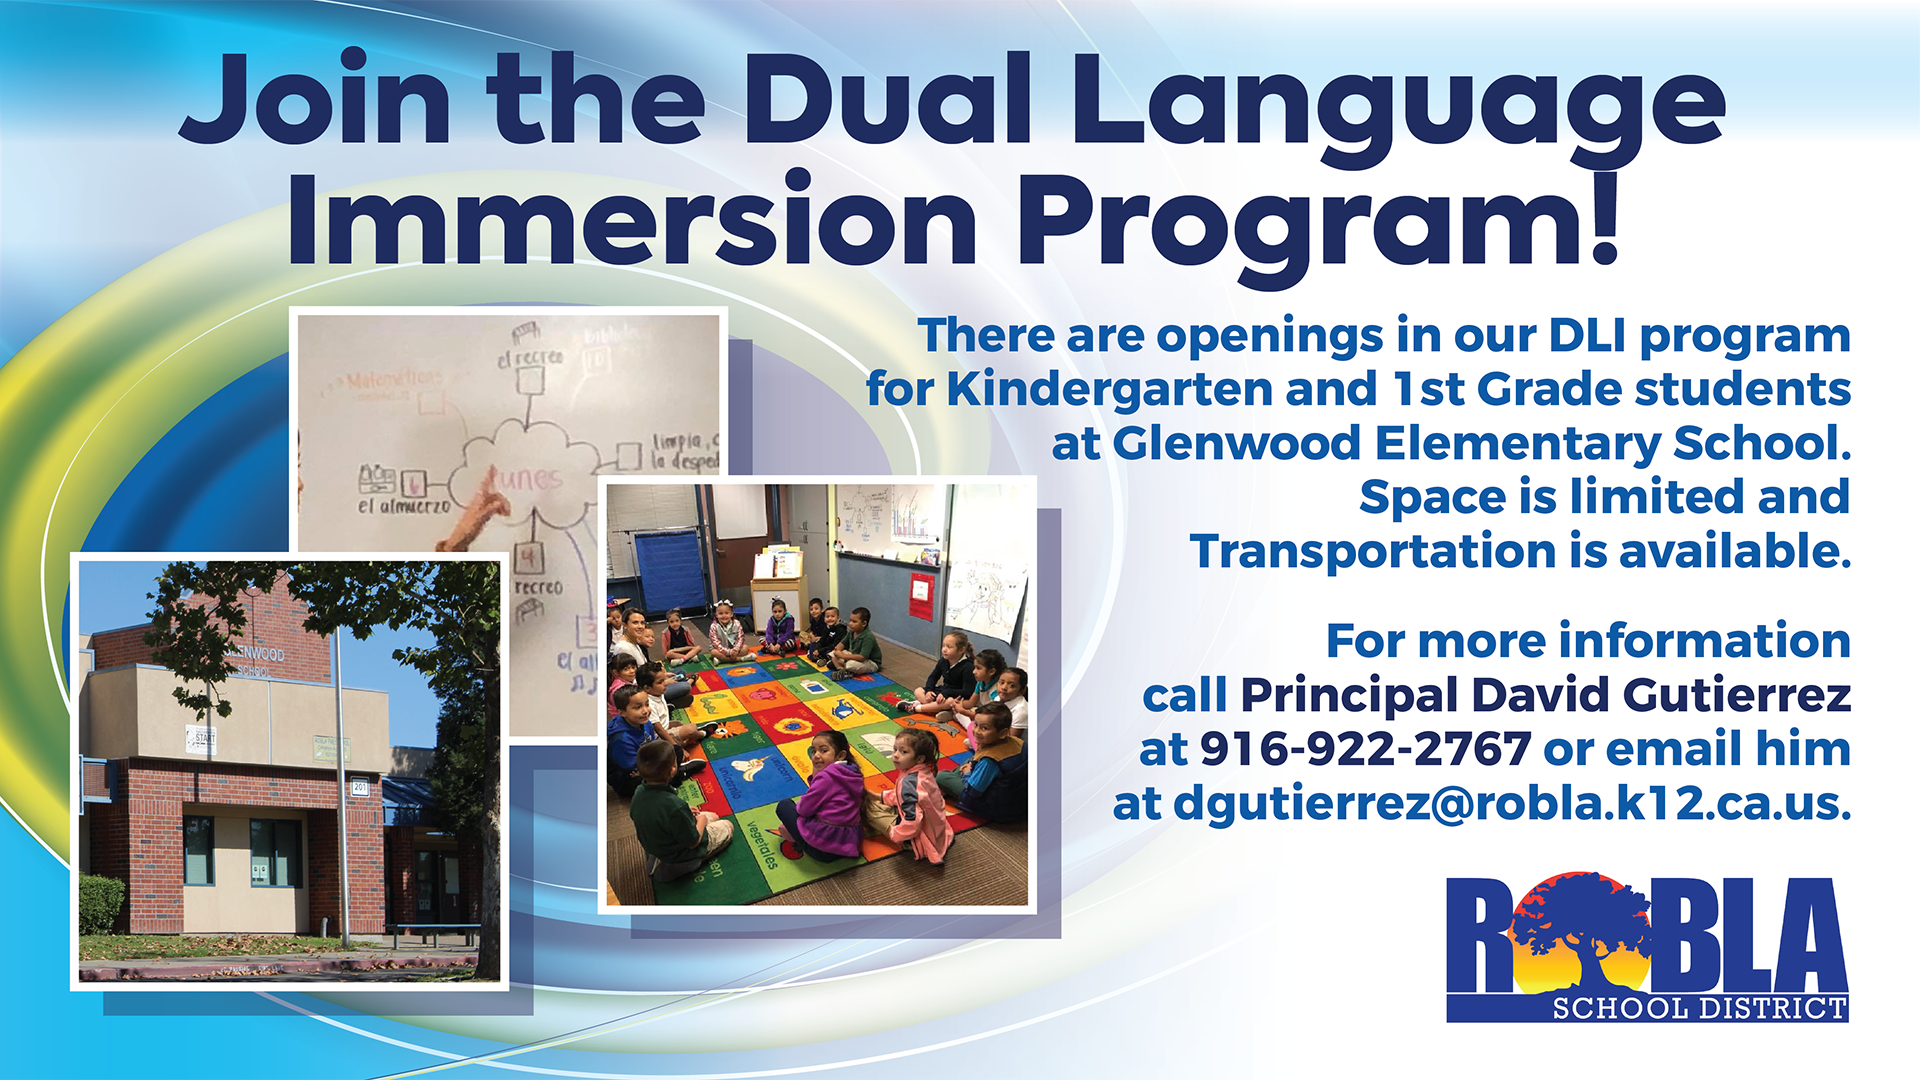 Join the Dual Language Immersion Program Flyer